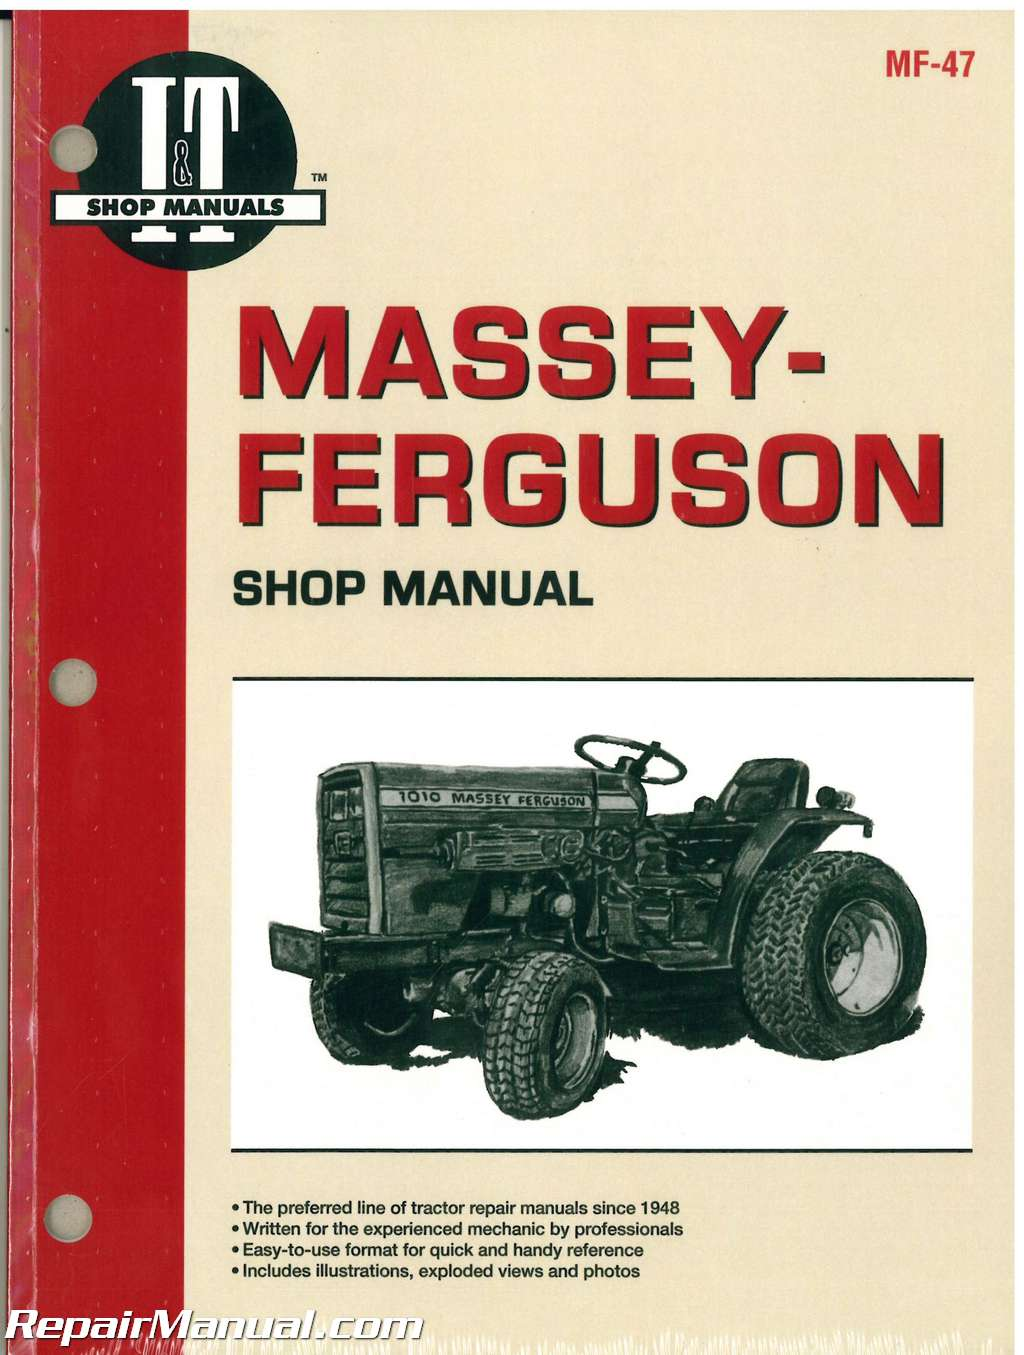 Delco Alternator Wiring Diagram Farmall 560 Library 1965 International Scout Massey Ferguson Harris 1010 1020 Tractor Manual Ih Super C For